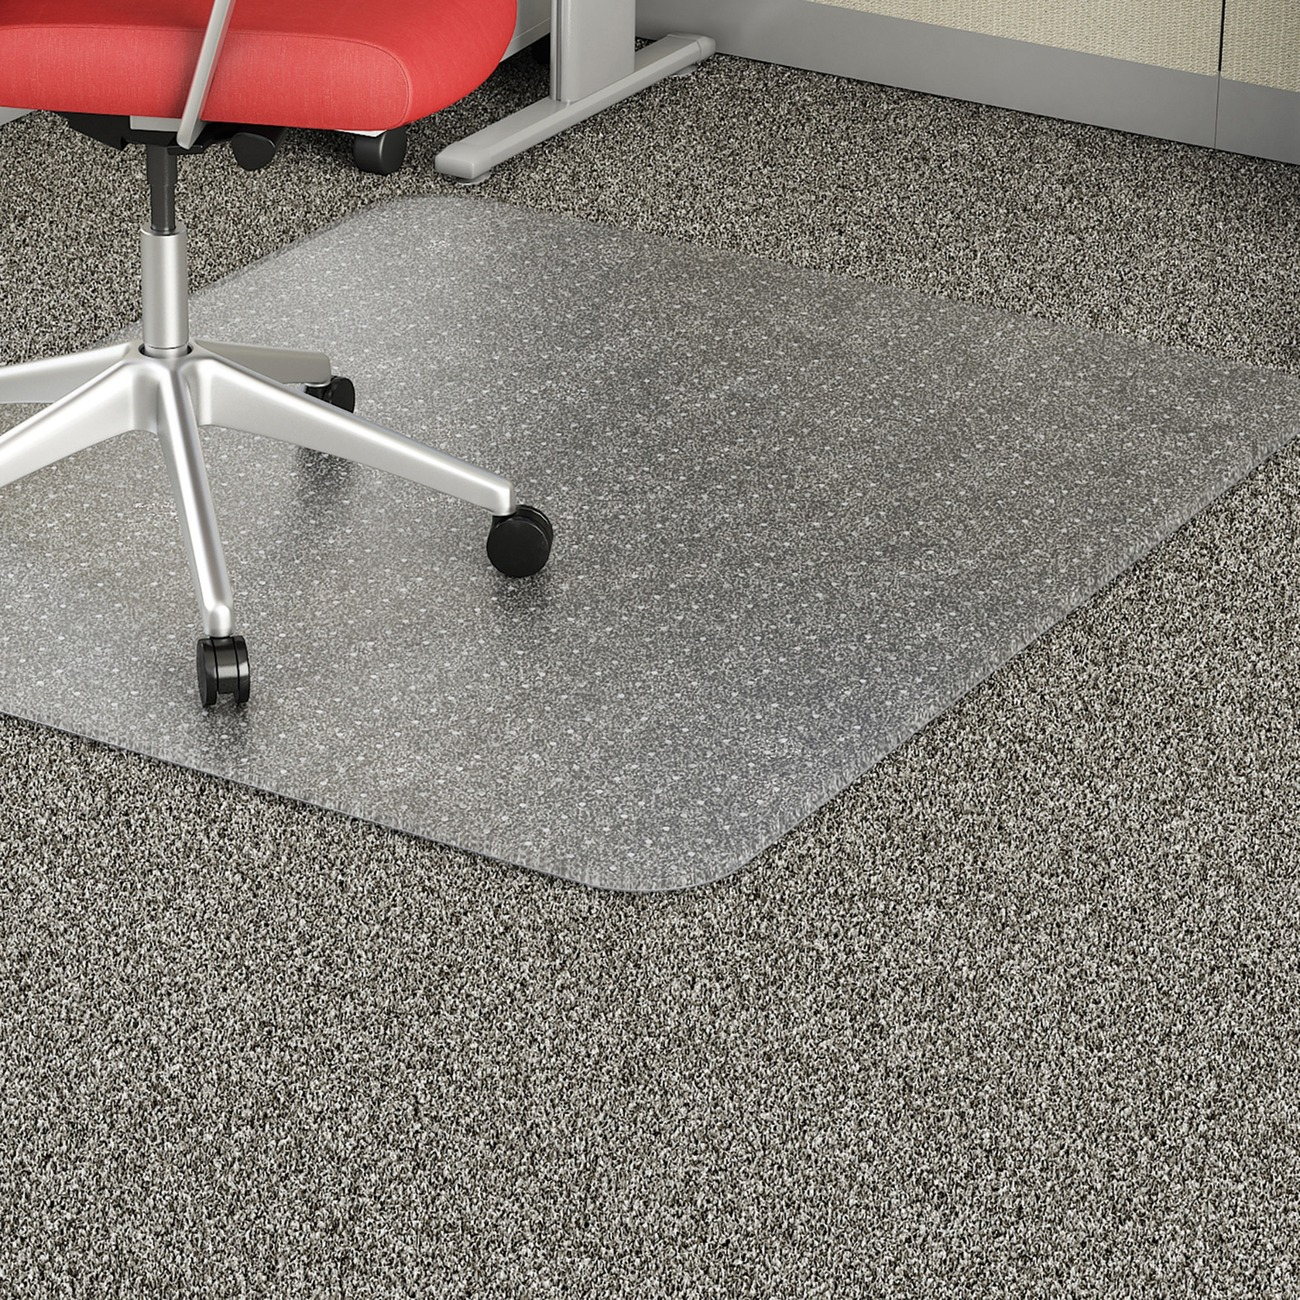 Chair Mat For Thick Carpet West Coast Office Supplies Furniture Chairs Chair